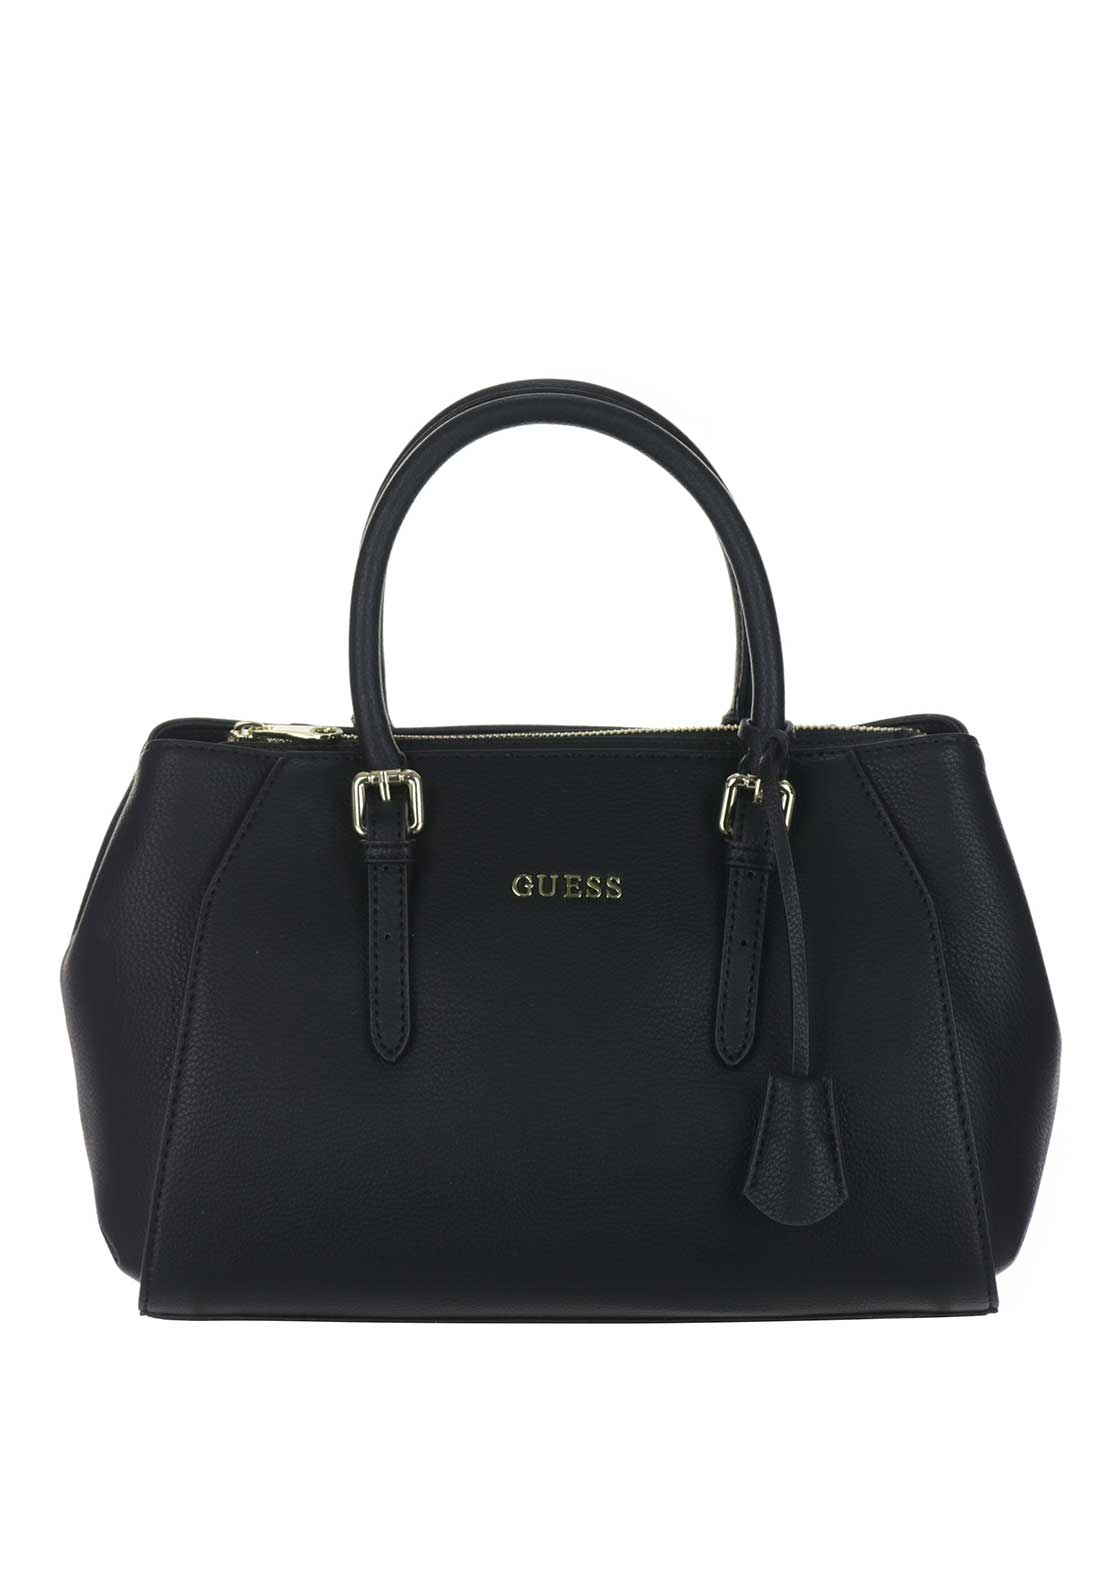 Guess Grab Bag, Black